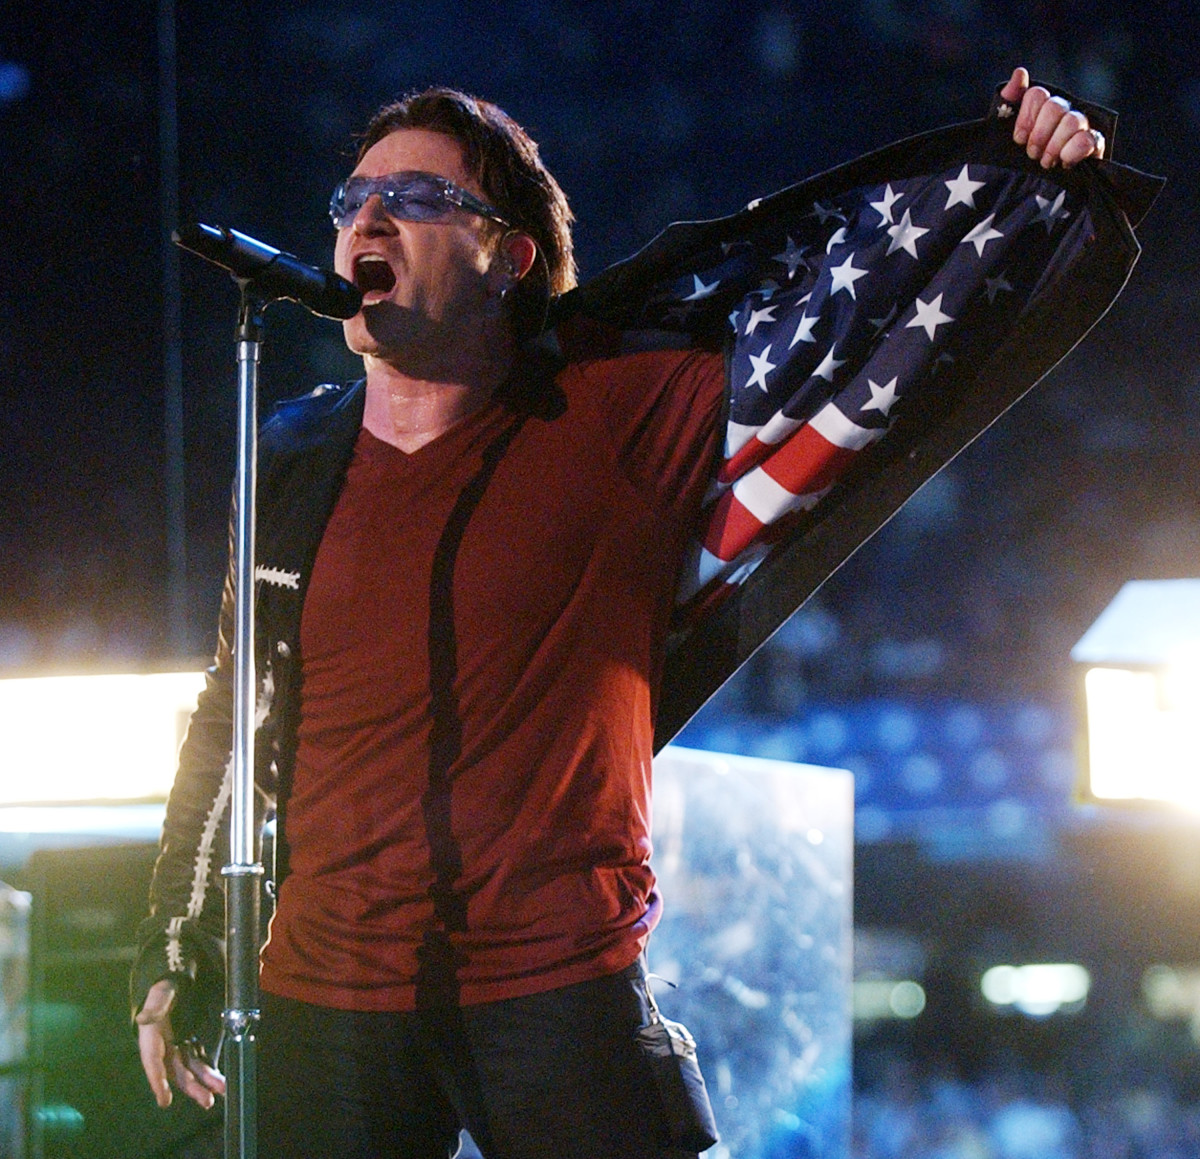 U2 Super Bowl Halftime 2002 Photo